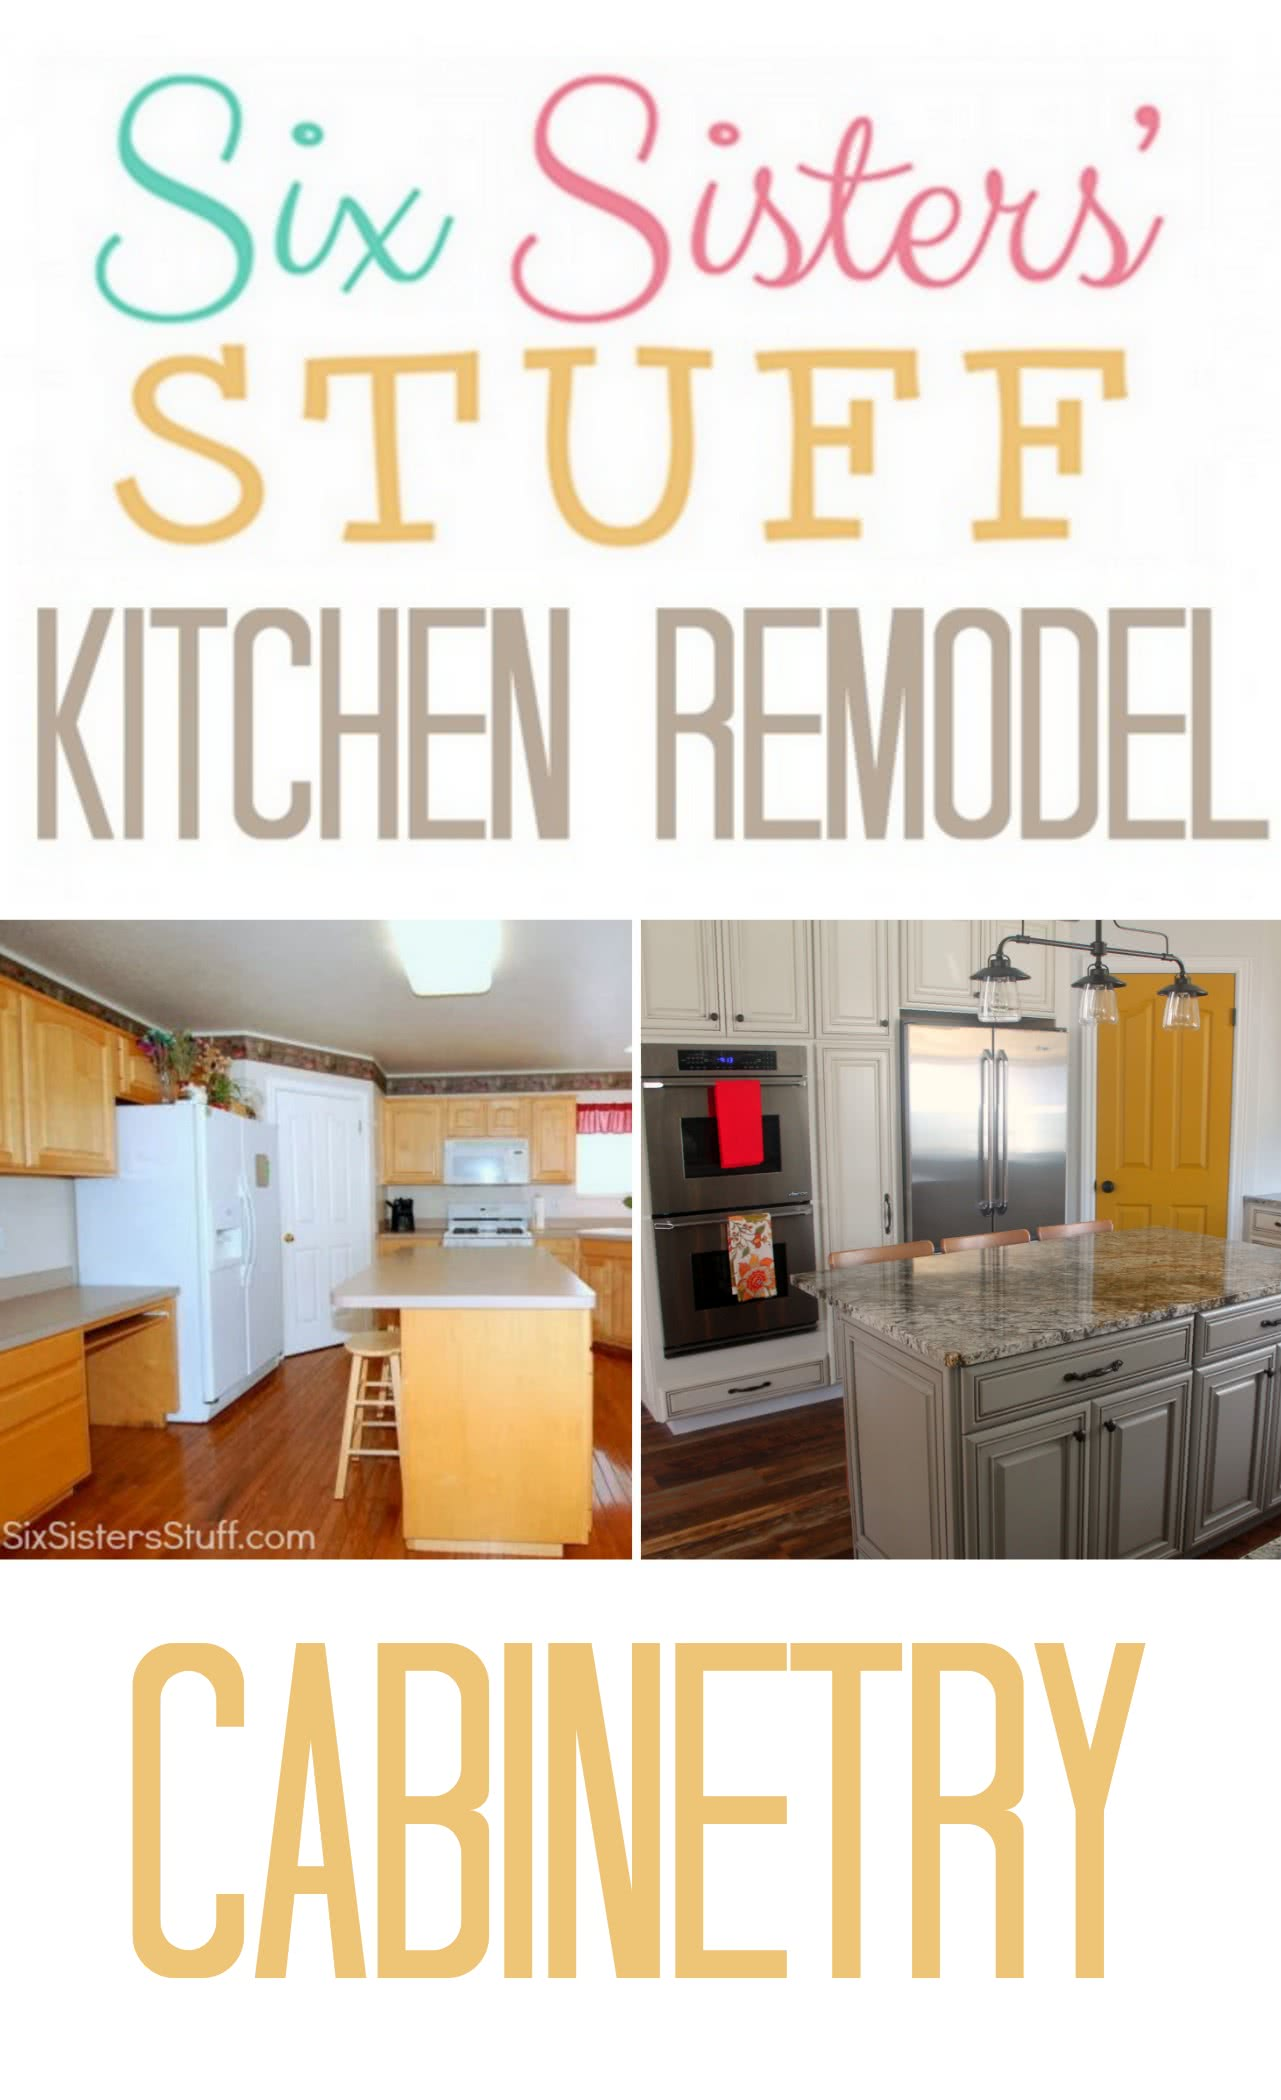 Six Sisters' Stuff Kitchen Remodel: Cabinetry